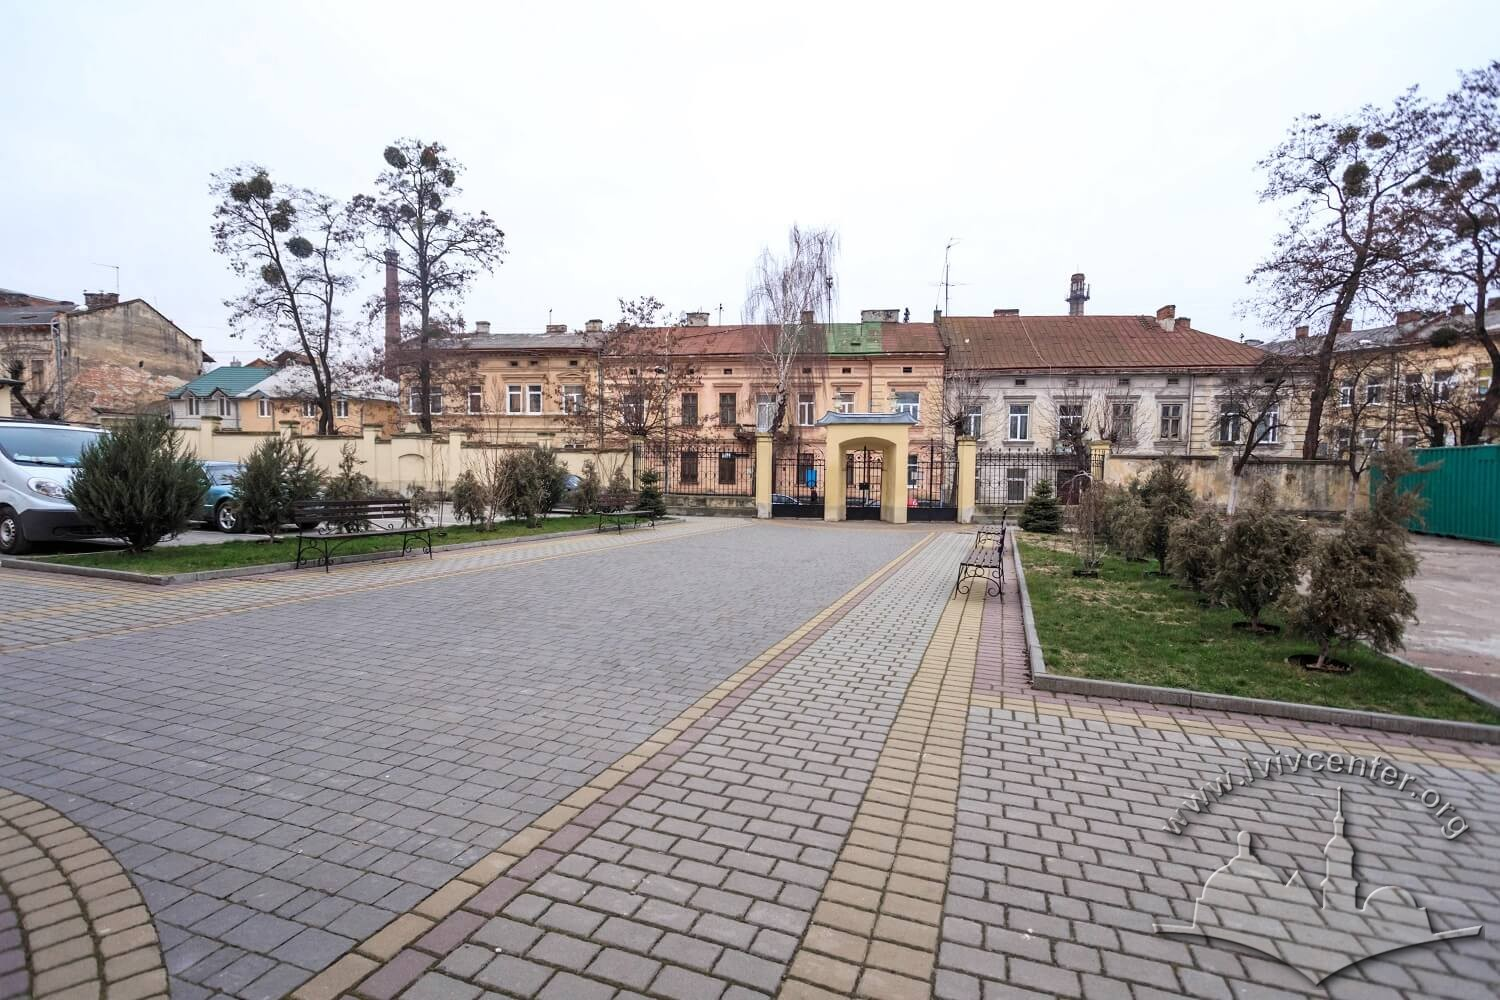 Courtyard in front of the prayer hall, on the background, the housing of vul. Zhovkivska/Photo courtesy of Nazarii Parkhomyk, 2015